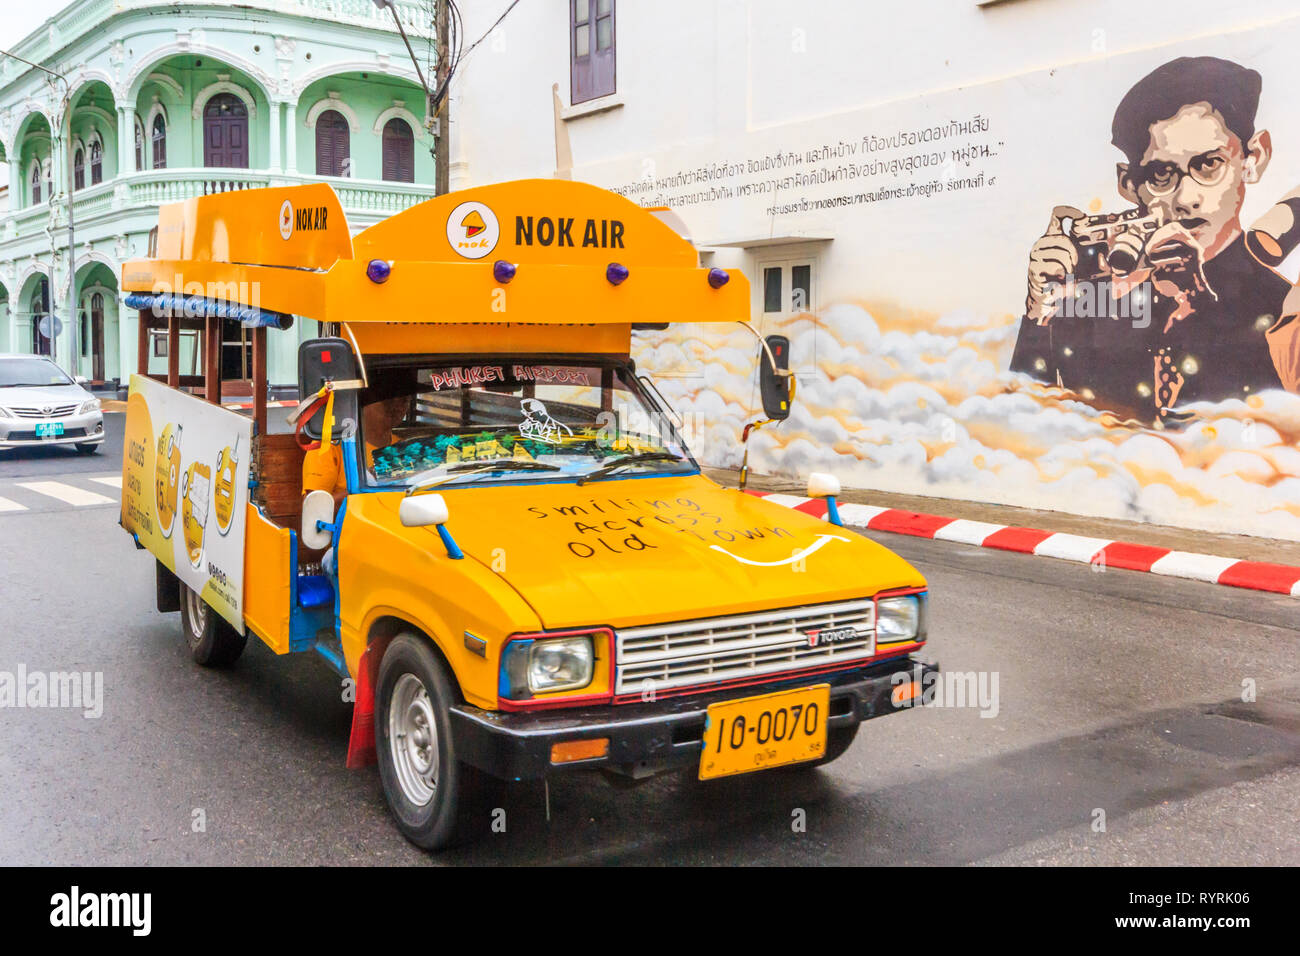 Phuket, Thailand - 11th April 2017: Yellow songthaew or taxi driving past mural of the late King. King Bhumibol was much revered. - Stock Image